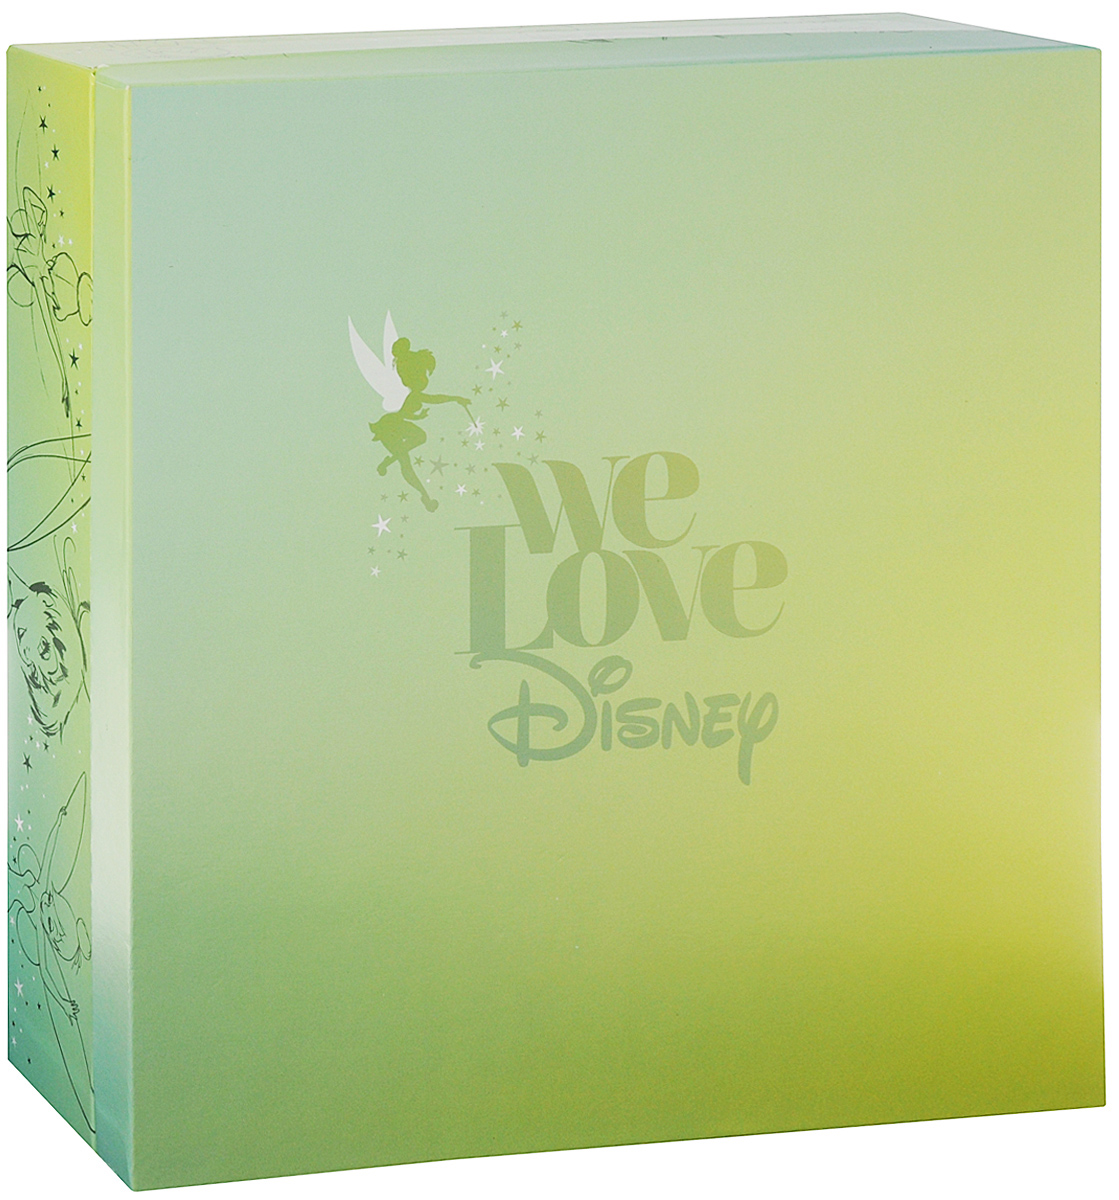 We Love Disney. Limited Edition (2 CD + DVD + 4 LP)